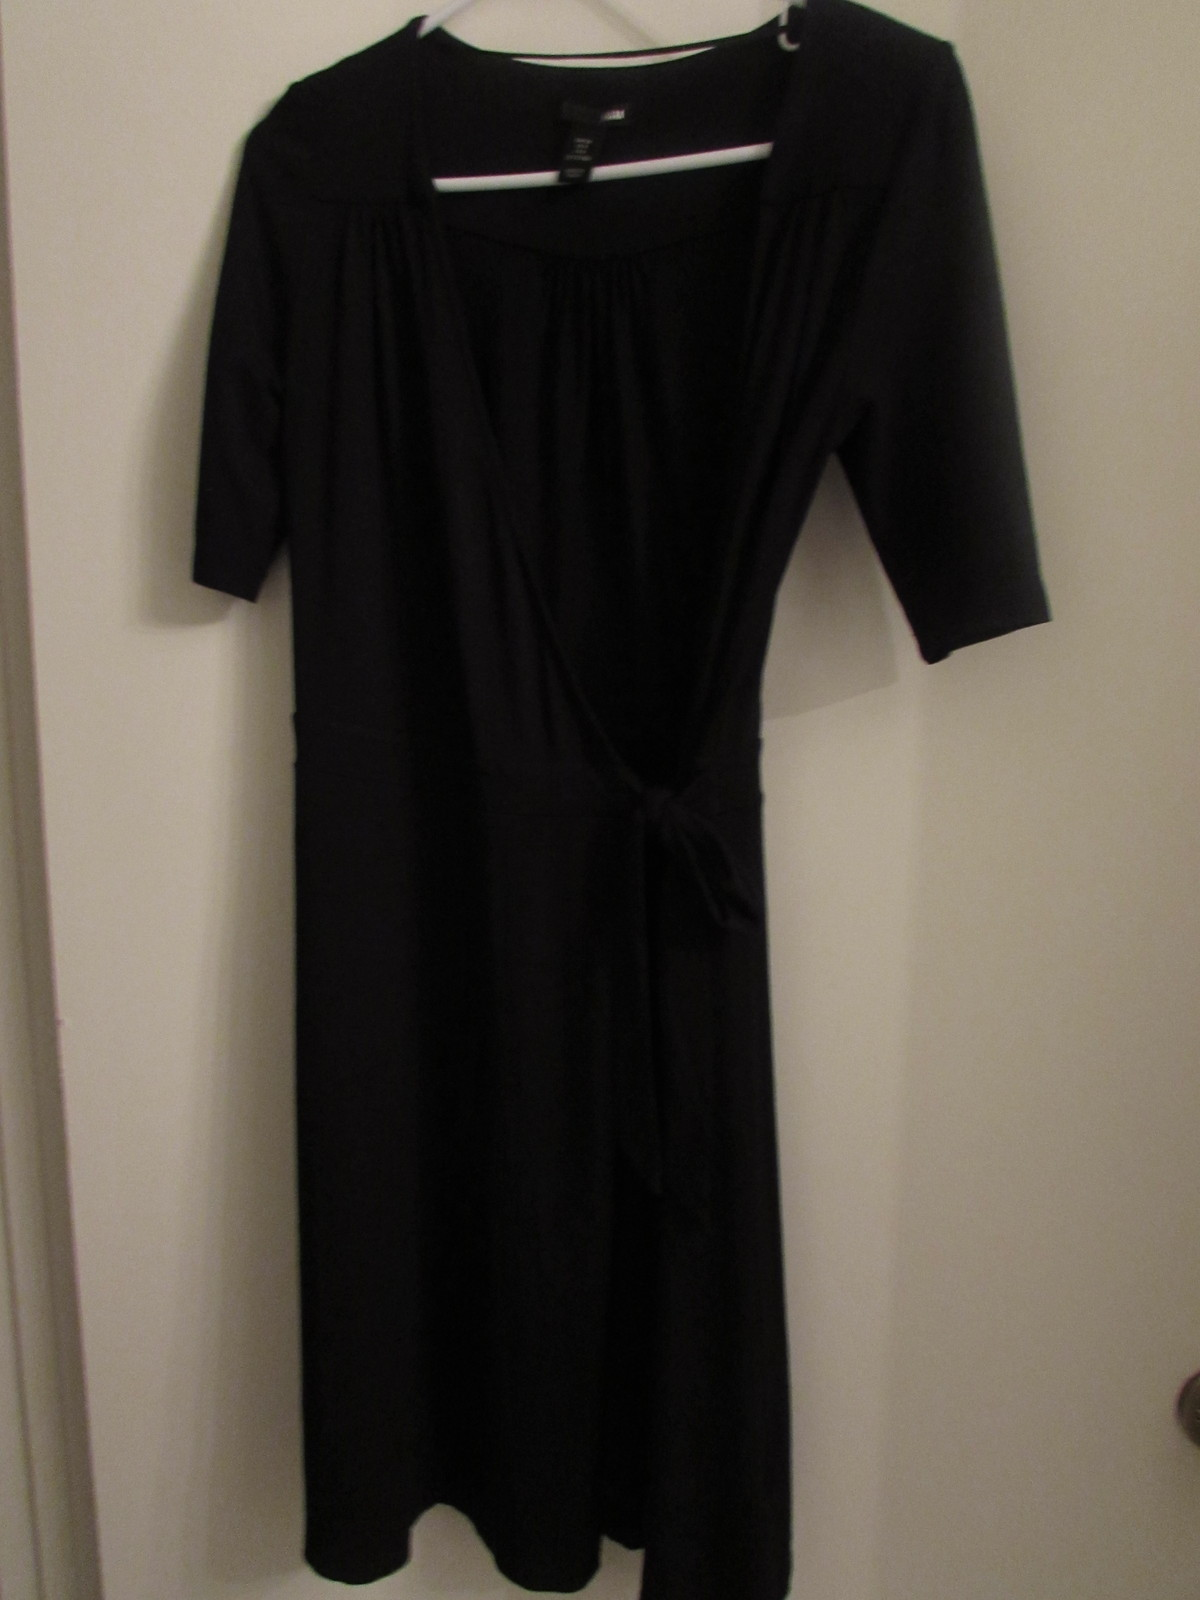 H&M Knee length wrap front Dress with side tie/Black Size: 8